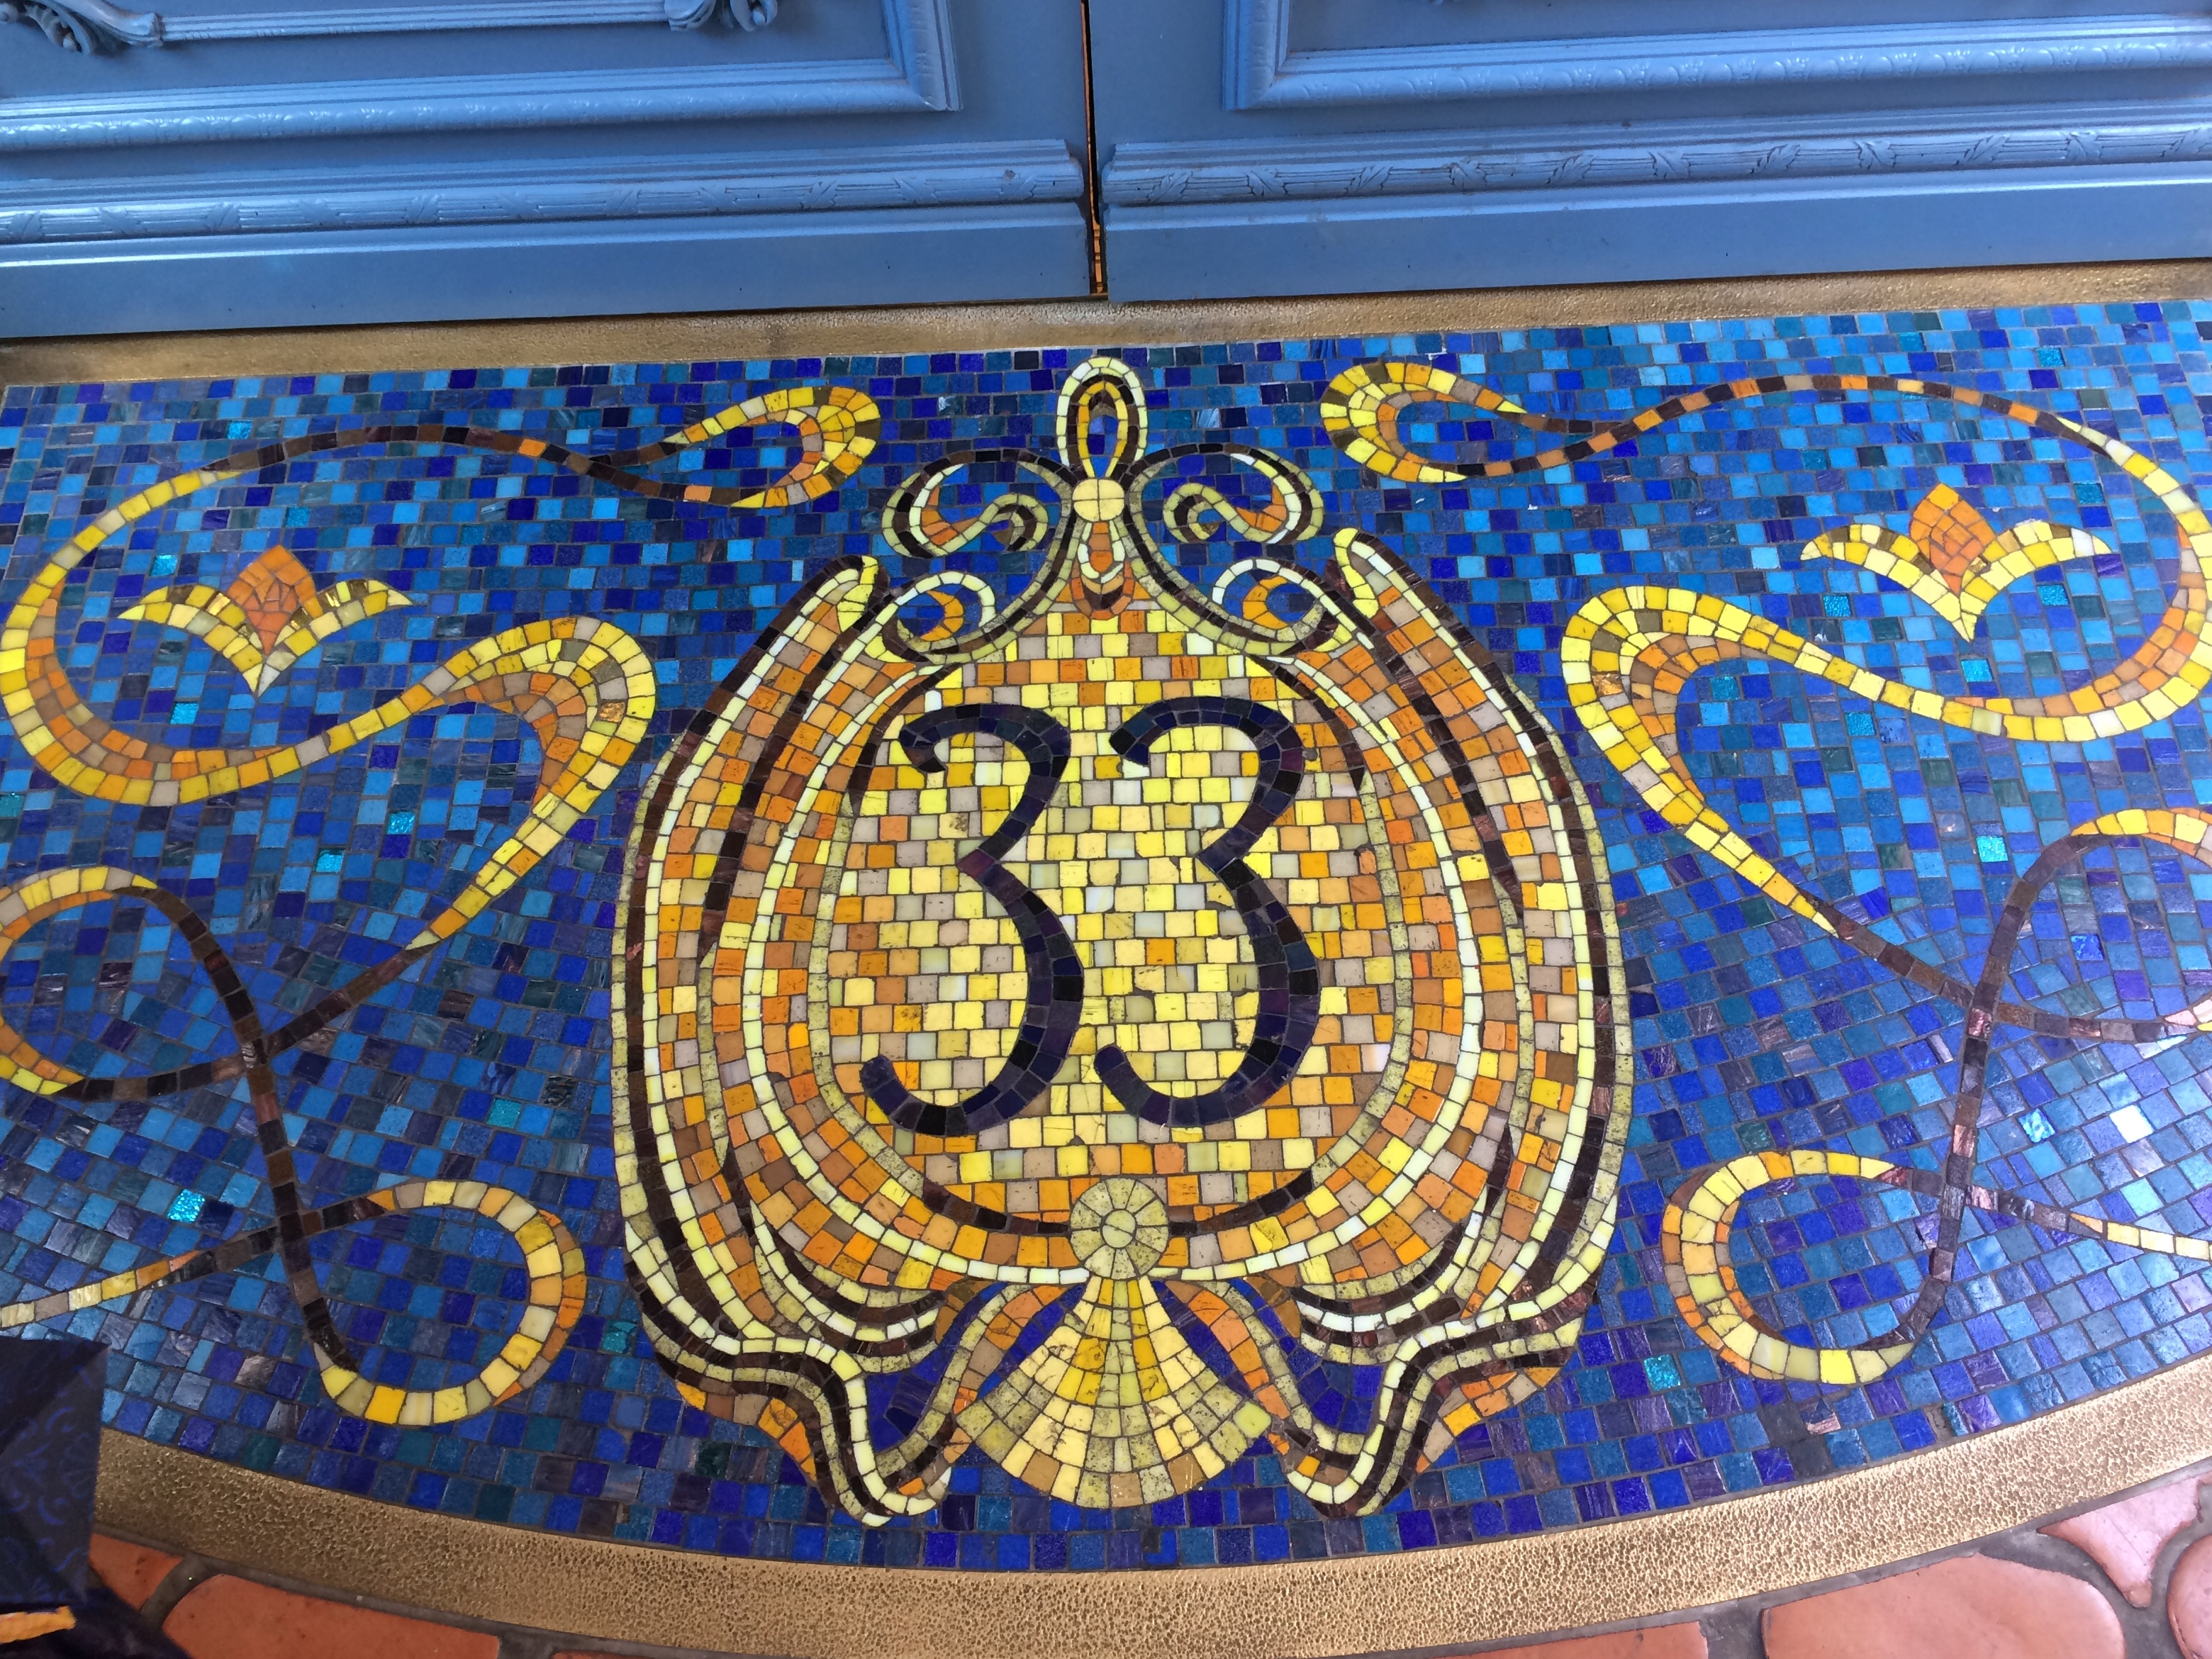 A Visit to Disneyland's Club 33